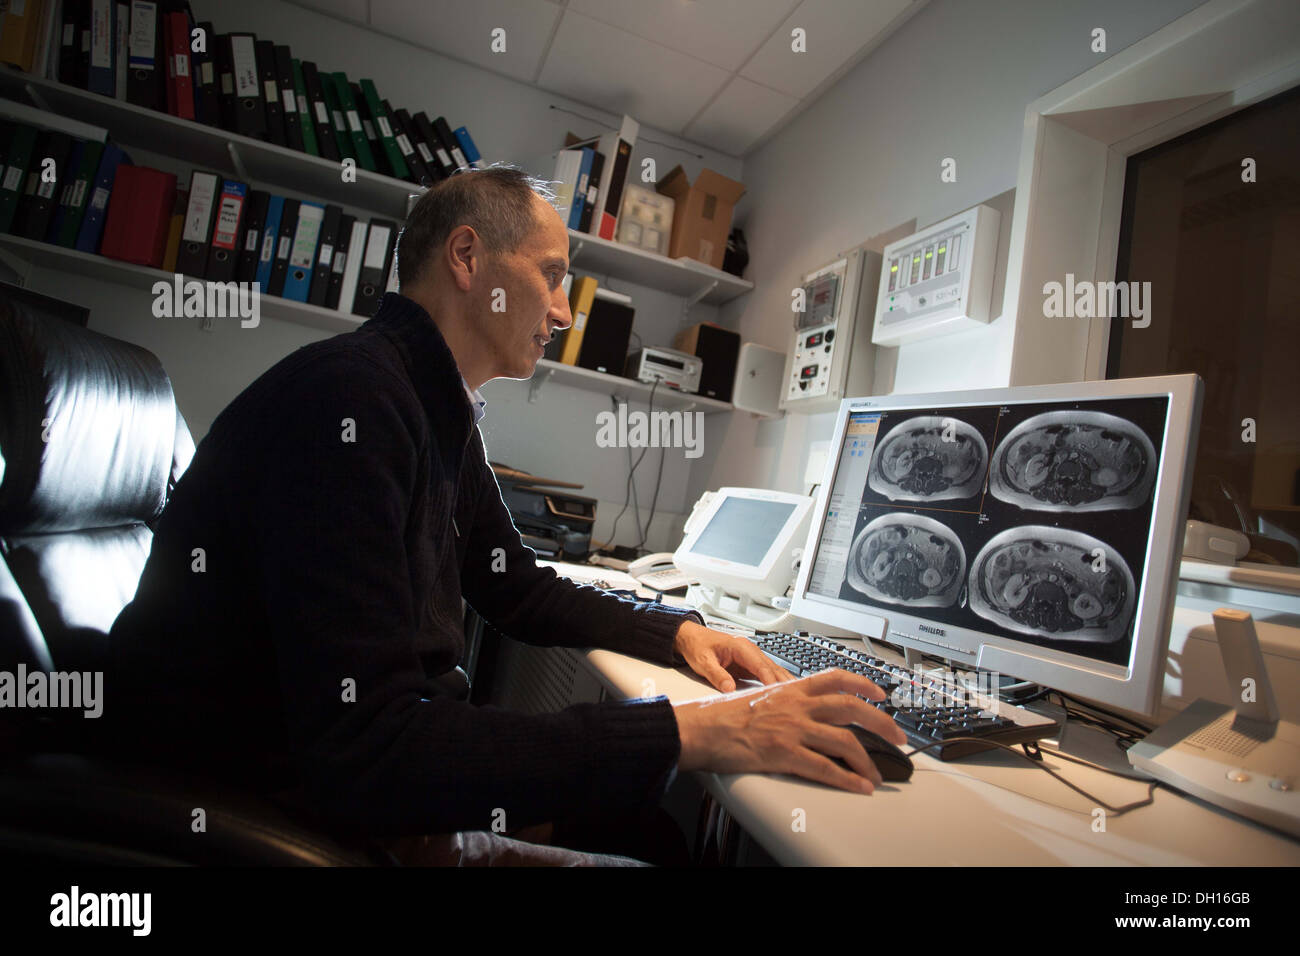 The Cancer Imaging Centre at The University of Manchester Wolfson Molecular Imaging Centre. Professor Alan Jackson 23/10/13 - Stock Image